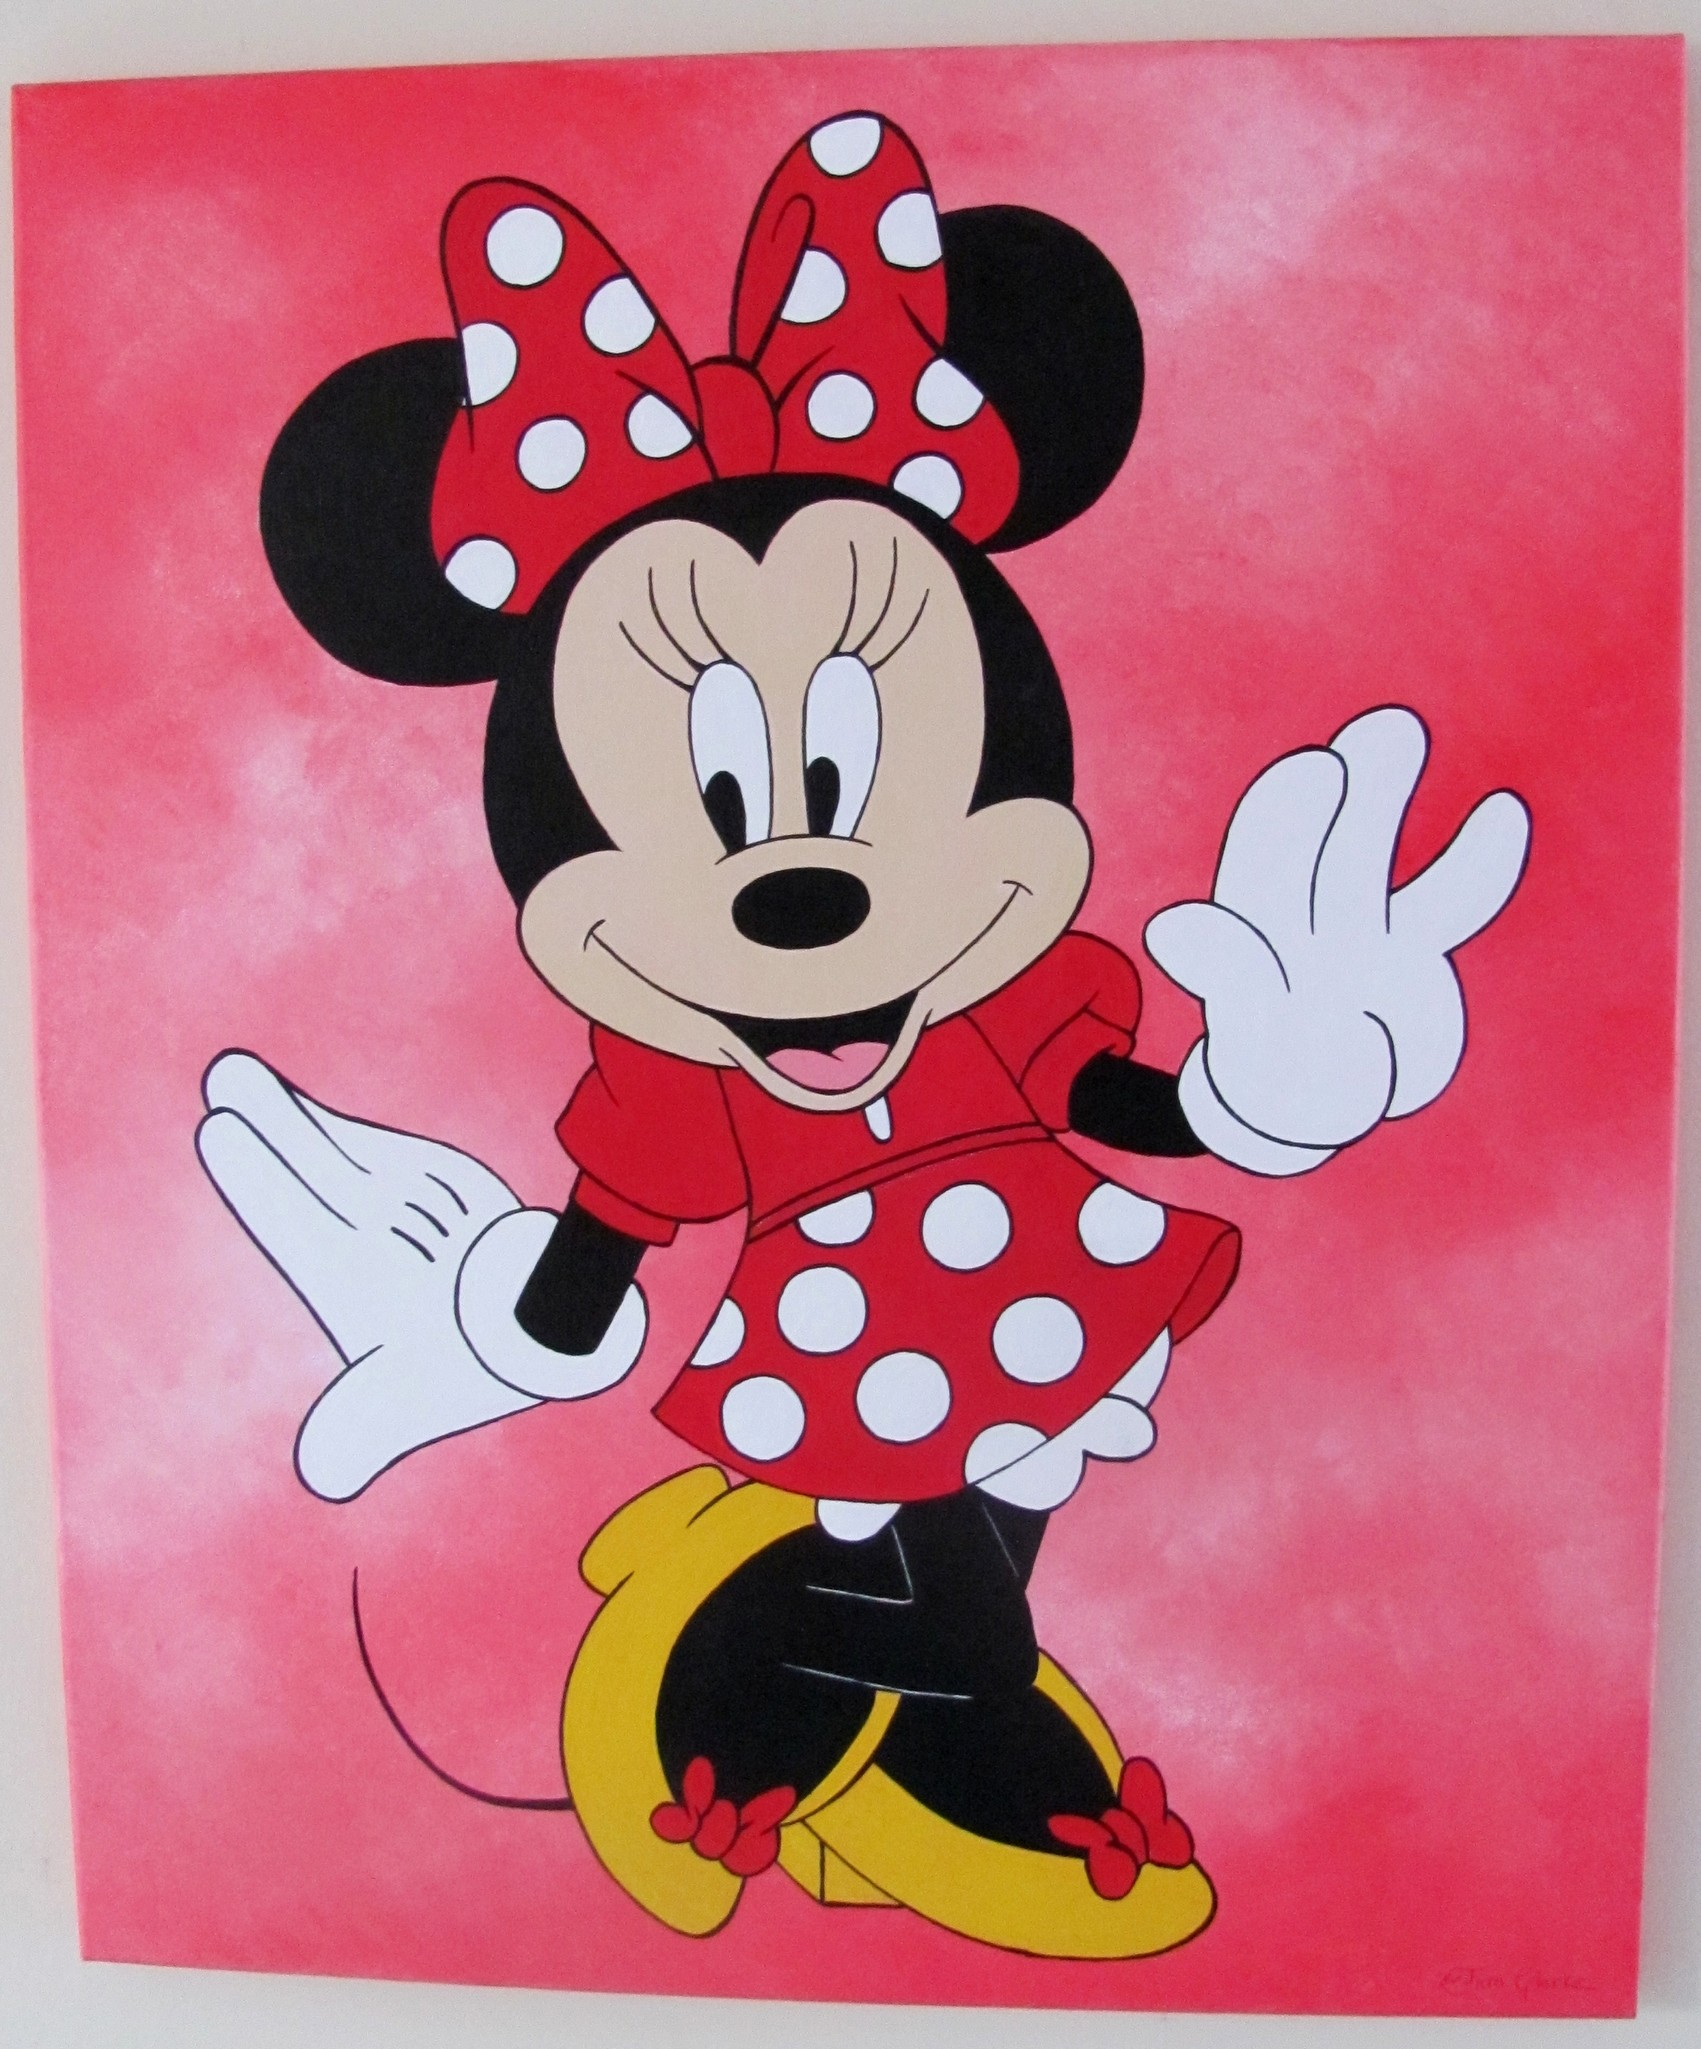 Minnie Mouse Wallpapers ·① WallpaperTag